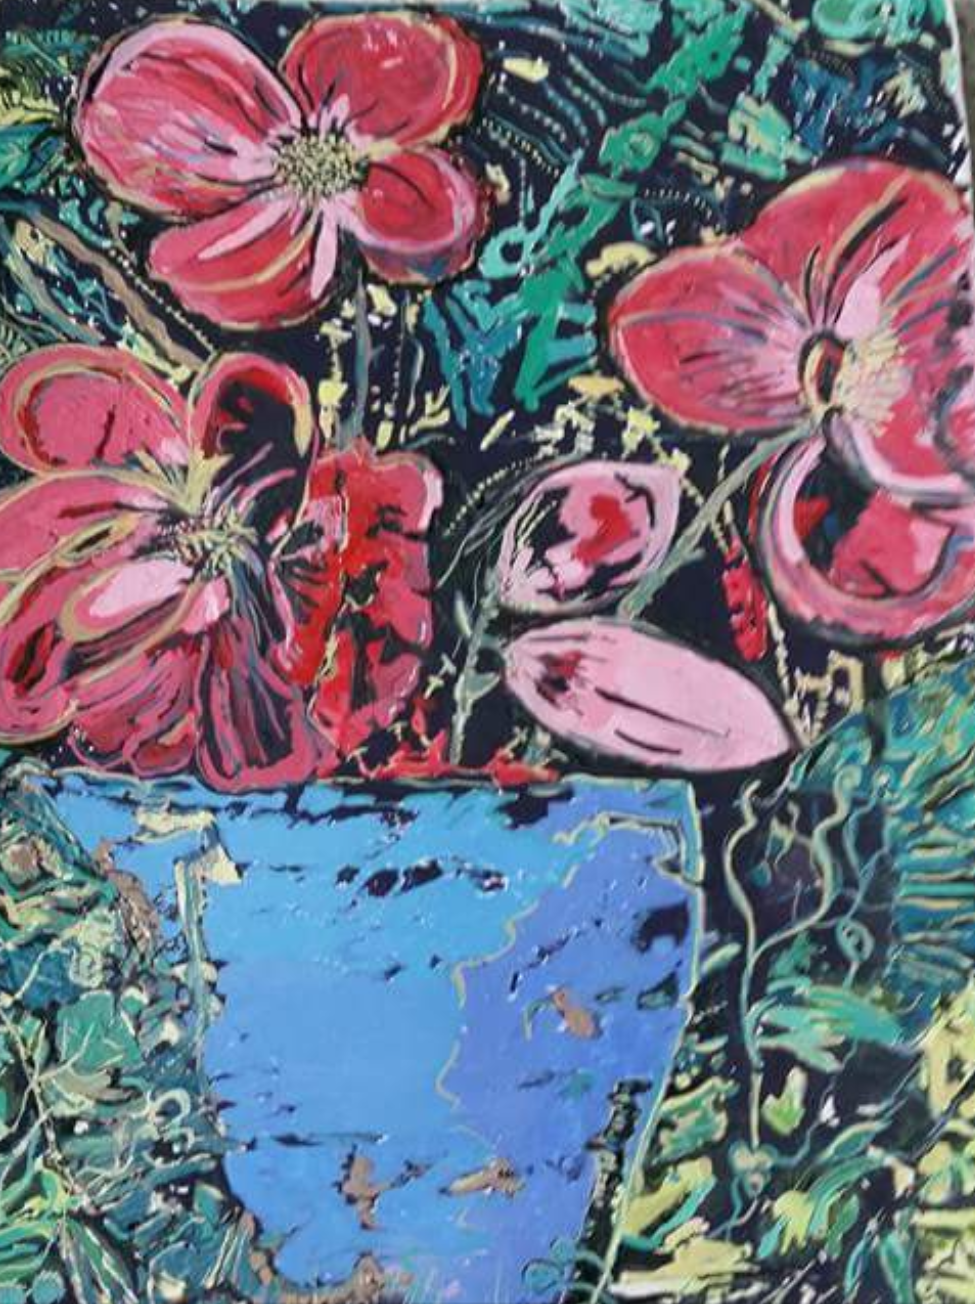 Chris Seatory Blue Vase with Flowers 2016 mixed media 20ck X30cm.jpg